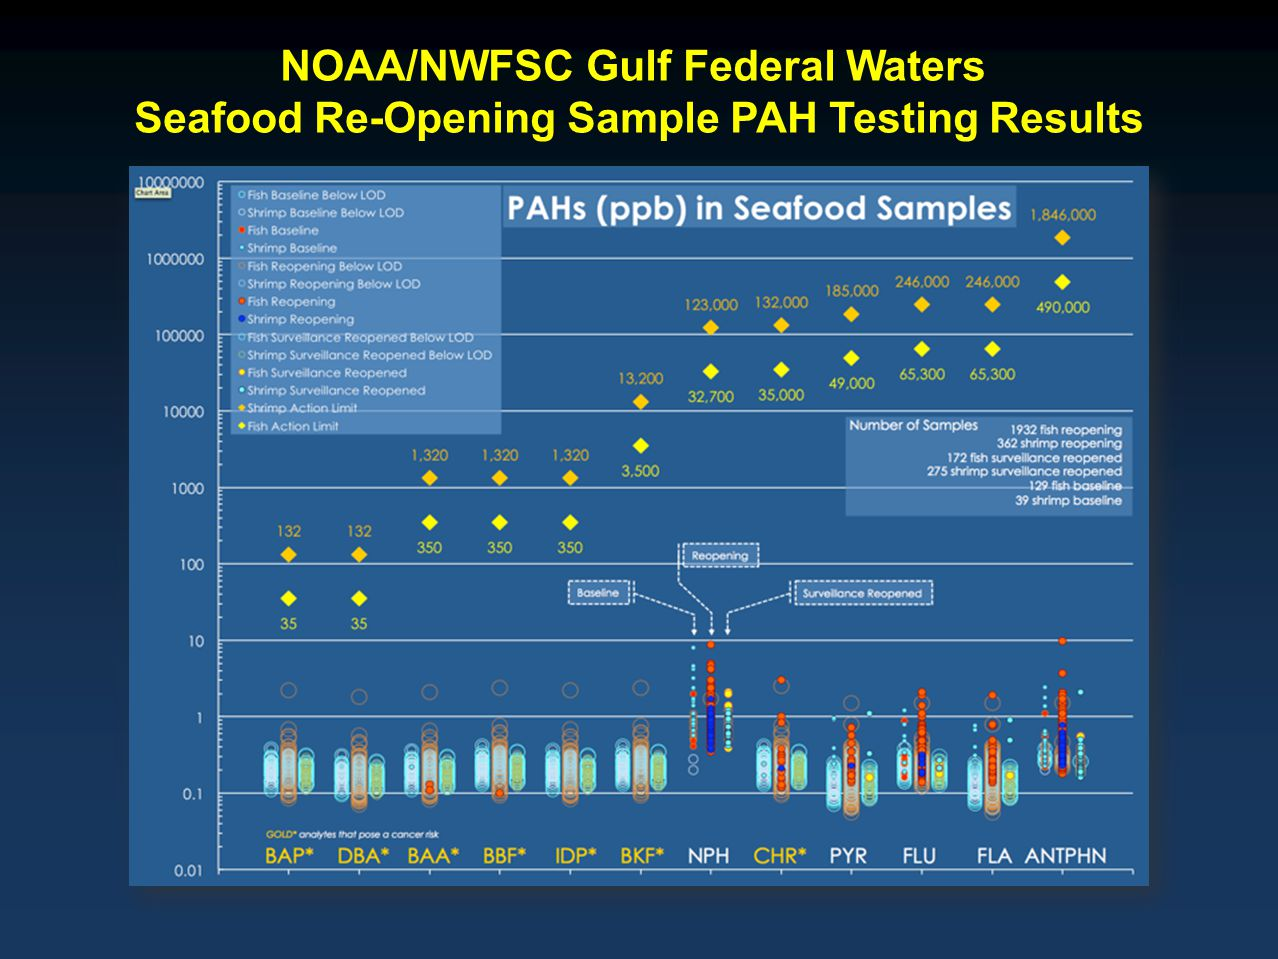 NOAA/NWFSC Gulf Federal Waters Seafood Re-Opening Sample PAH Testing Results